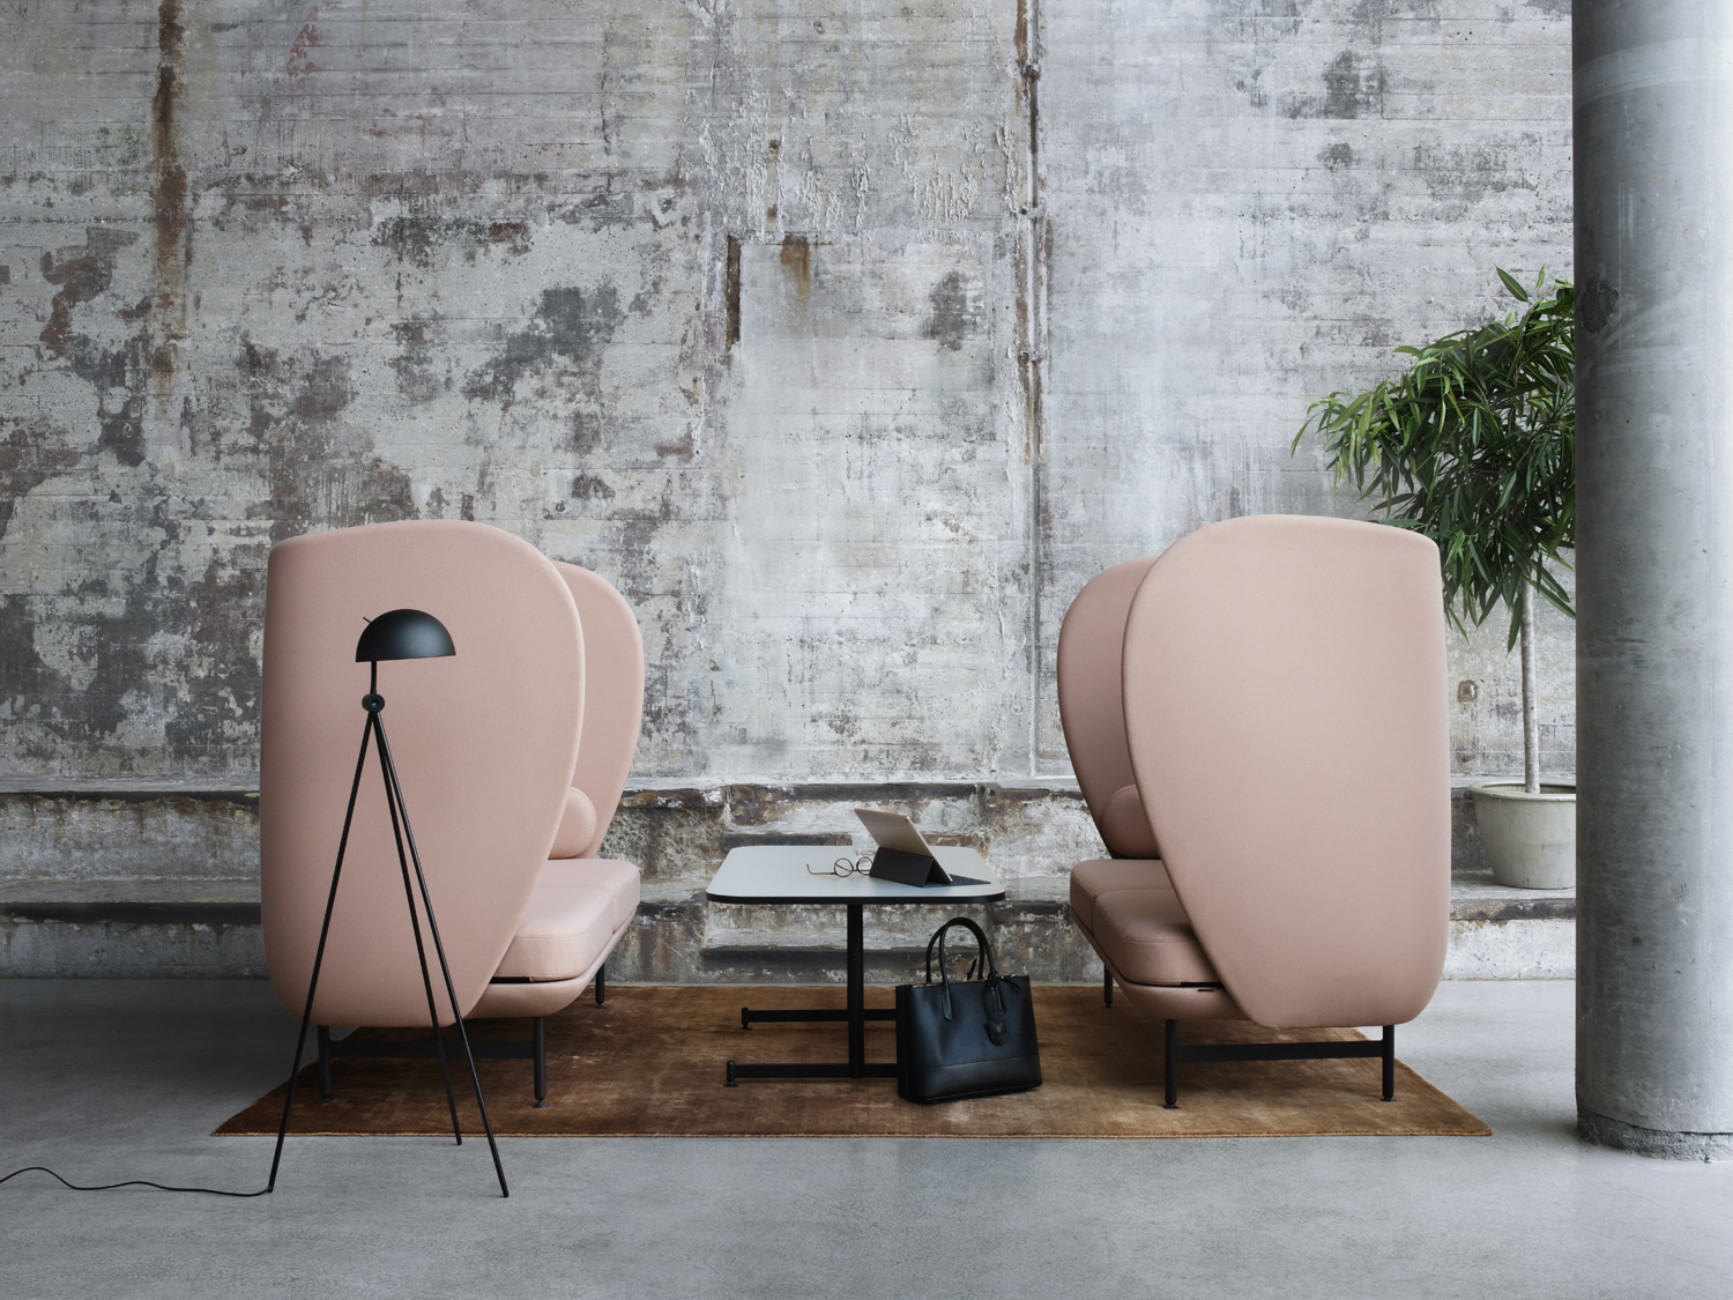 """Plenum"" for Fritz Hansen is Jaime Hayon's interpretation of the cocooning sofa: He has translated the task into huge wing chairs."